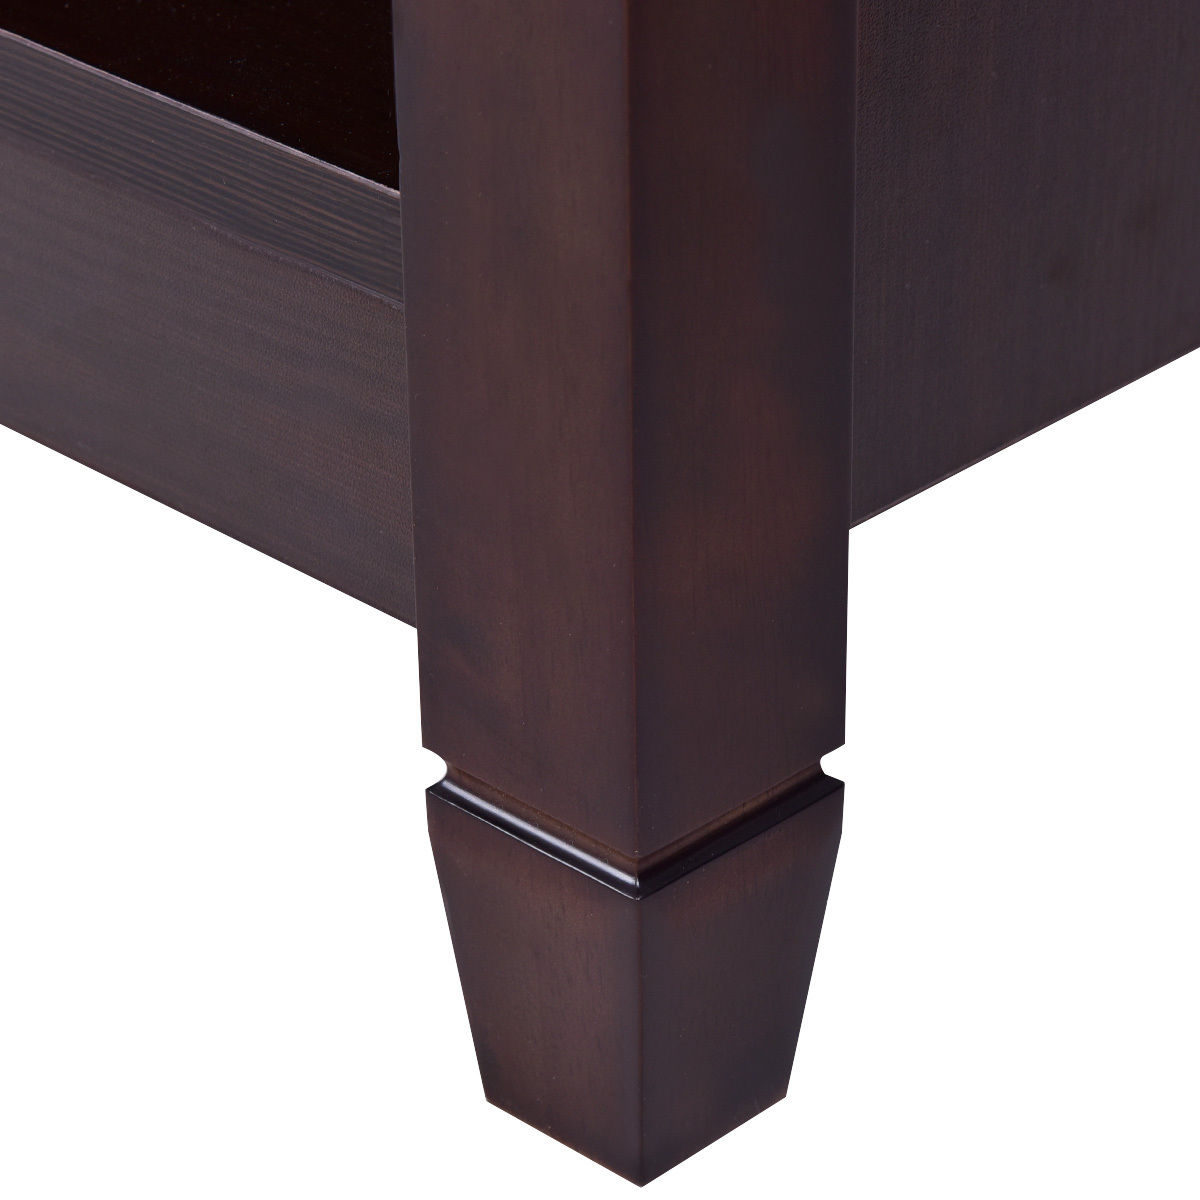 Lift Top Coffee Table With Hidden Storage Compartment: Costway: Costway Lift Top Coffee Table W/ Hidden